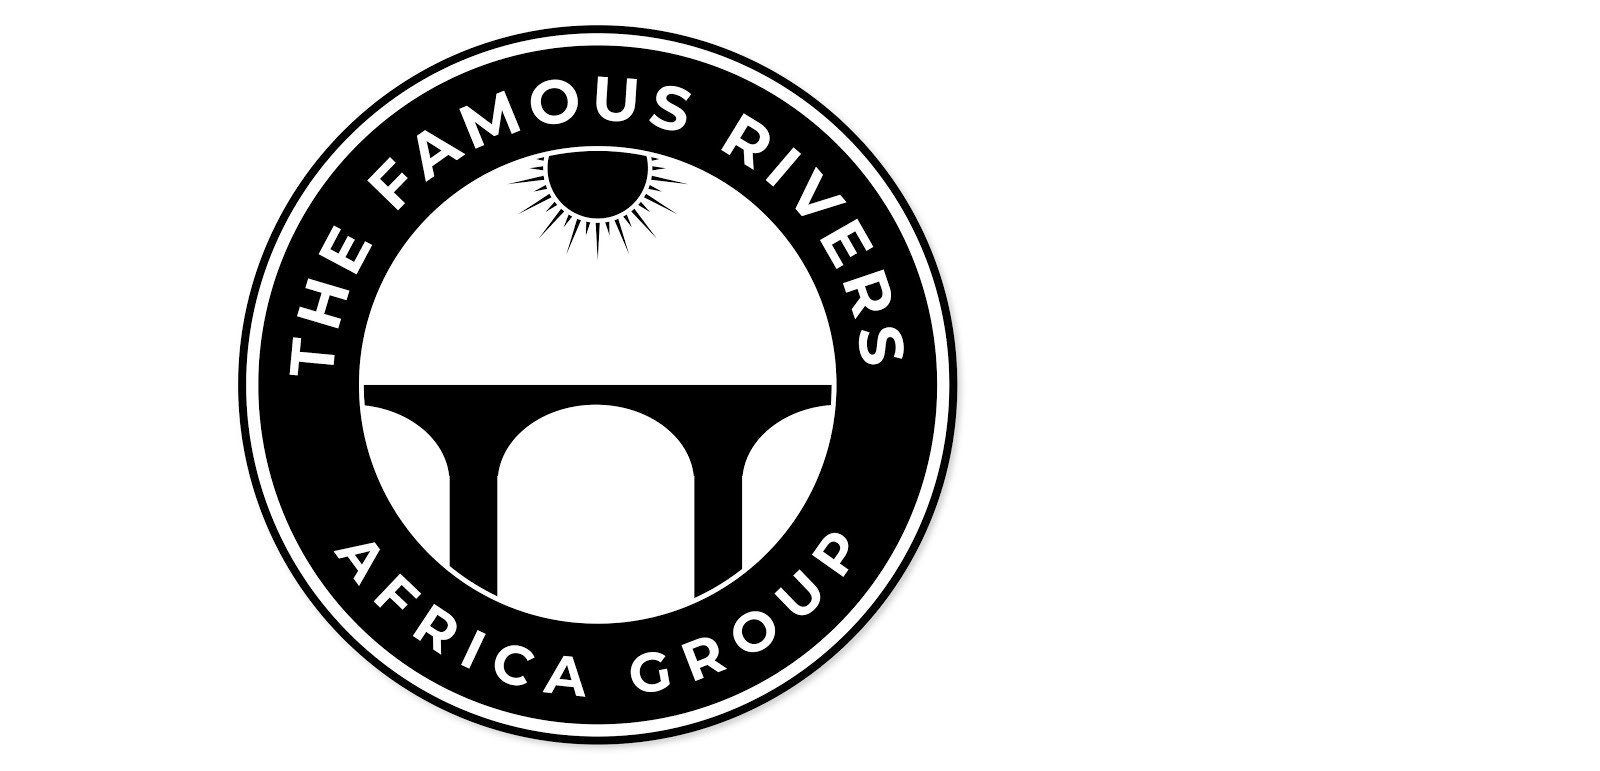 The Famous Rivers Africa Group